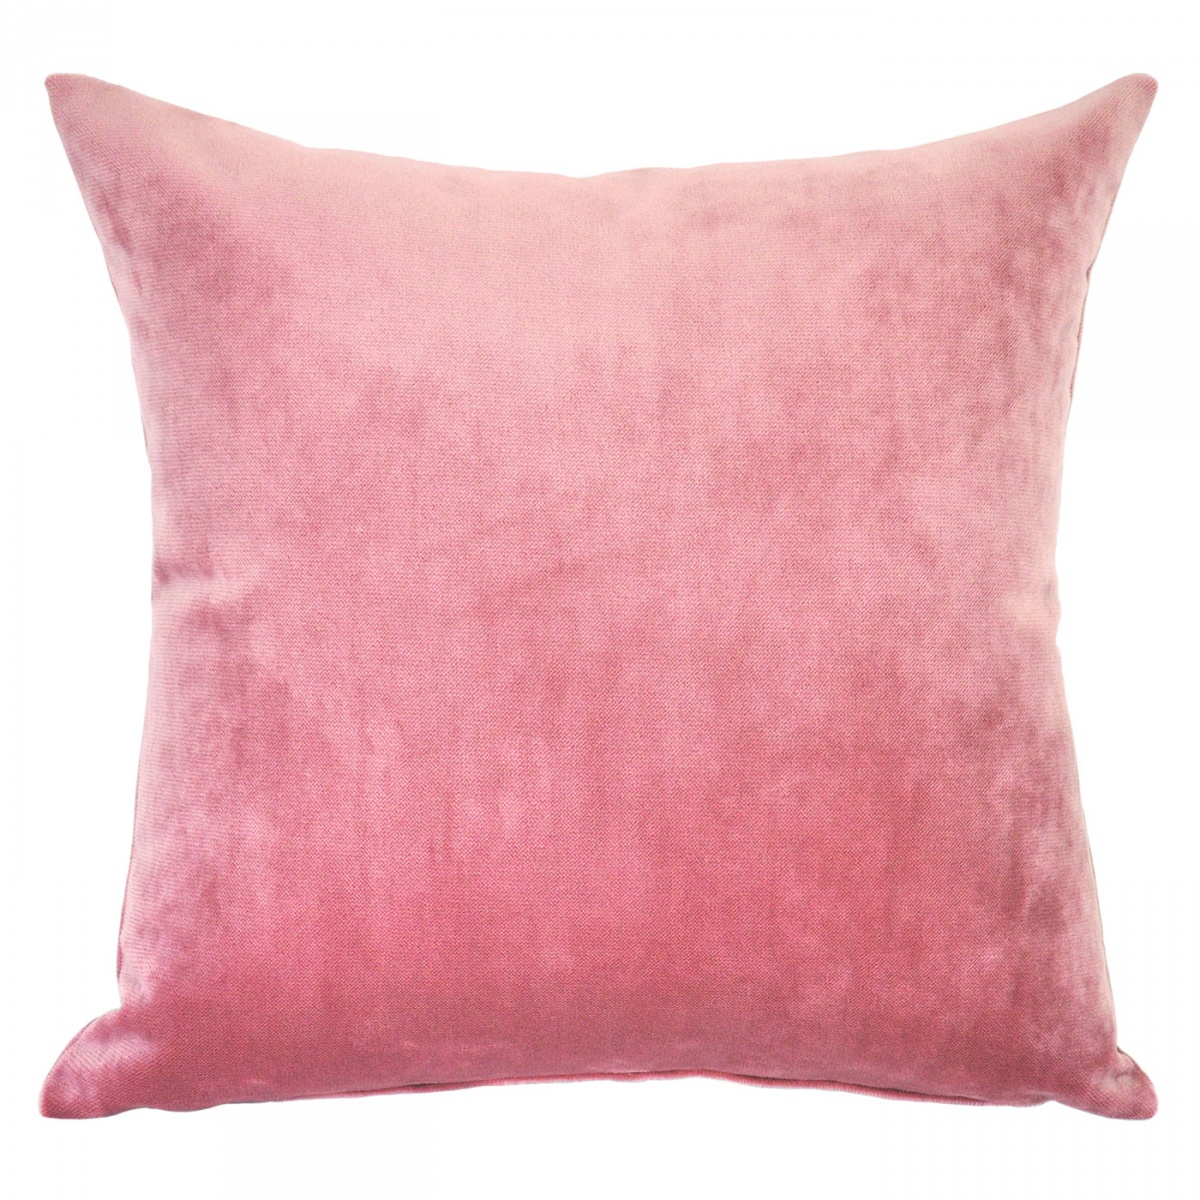 Mystere Blush Velvet Cushion - 45x45cm